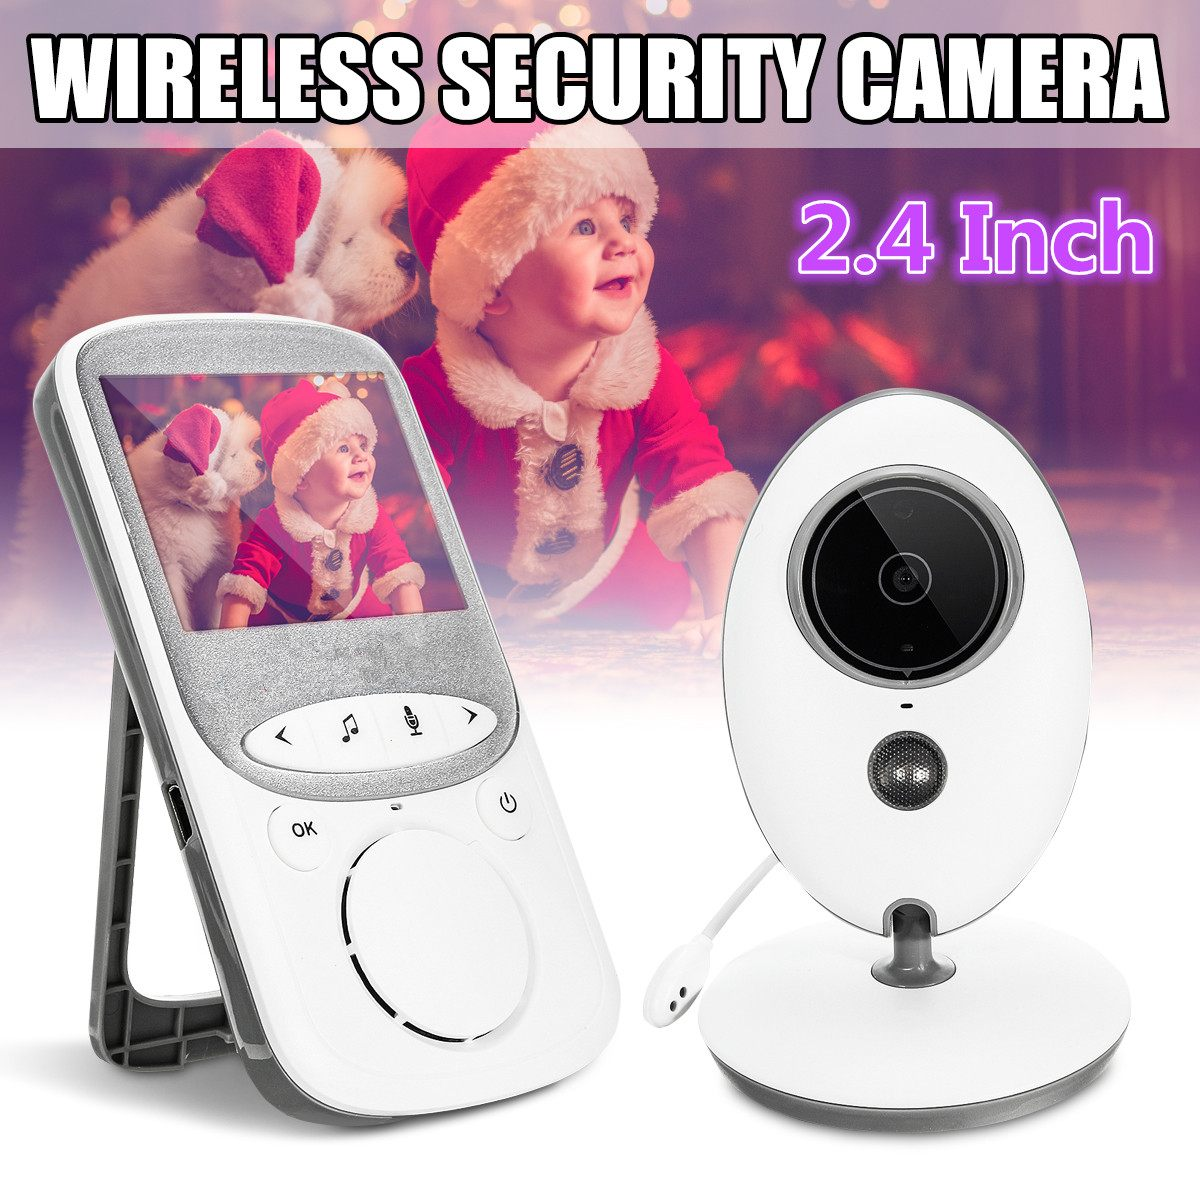 2.4 Inch Digital Wireless Night Vision Baby Monitor Baby Security LCD Audio Video Camera 2 Way Talk Temperature Monitor Security image